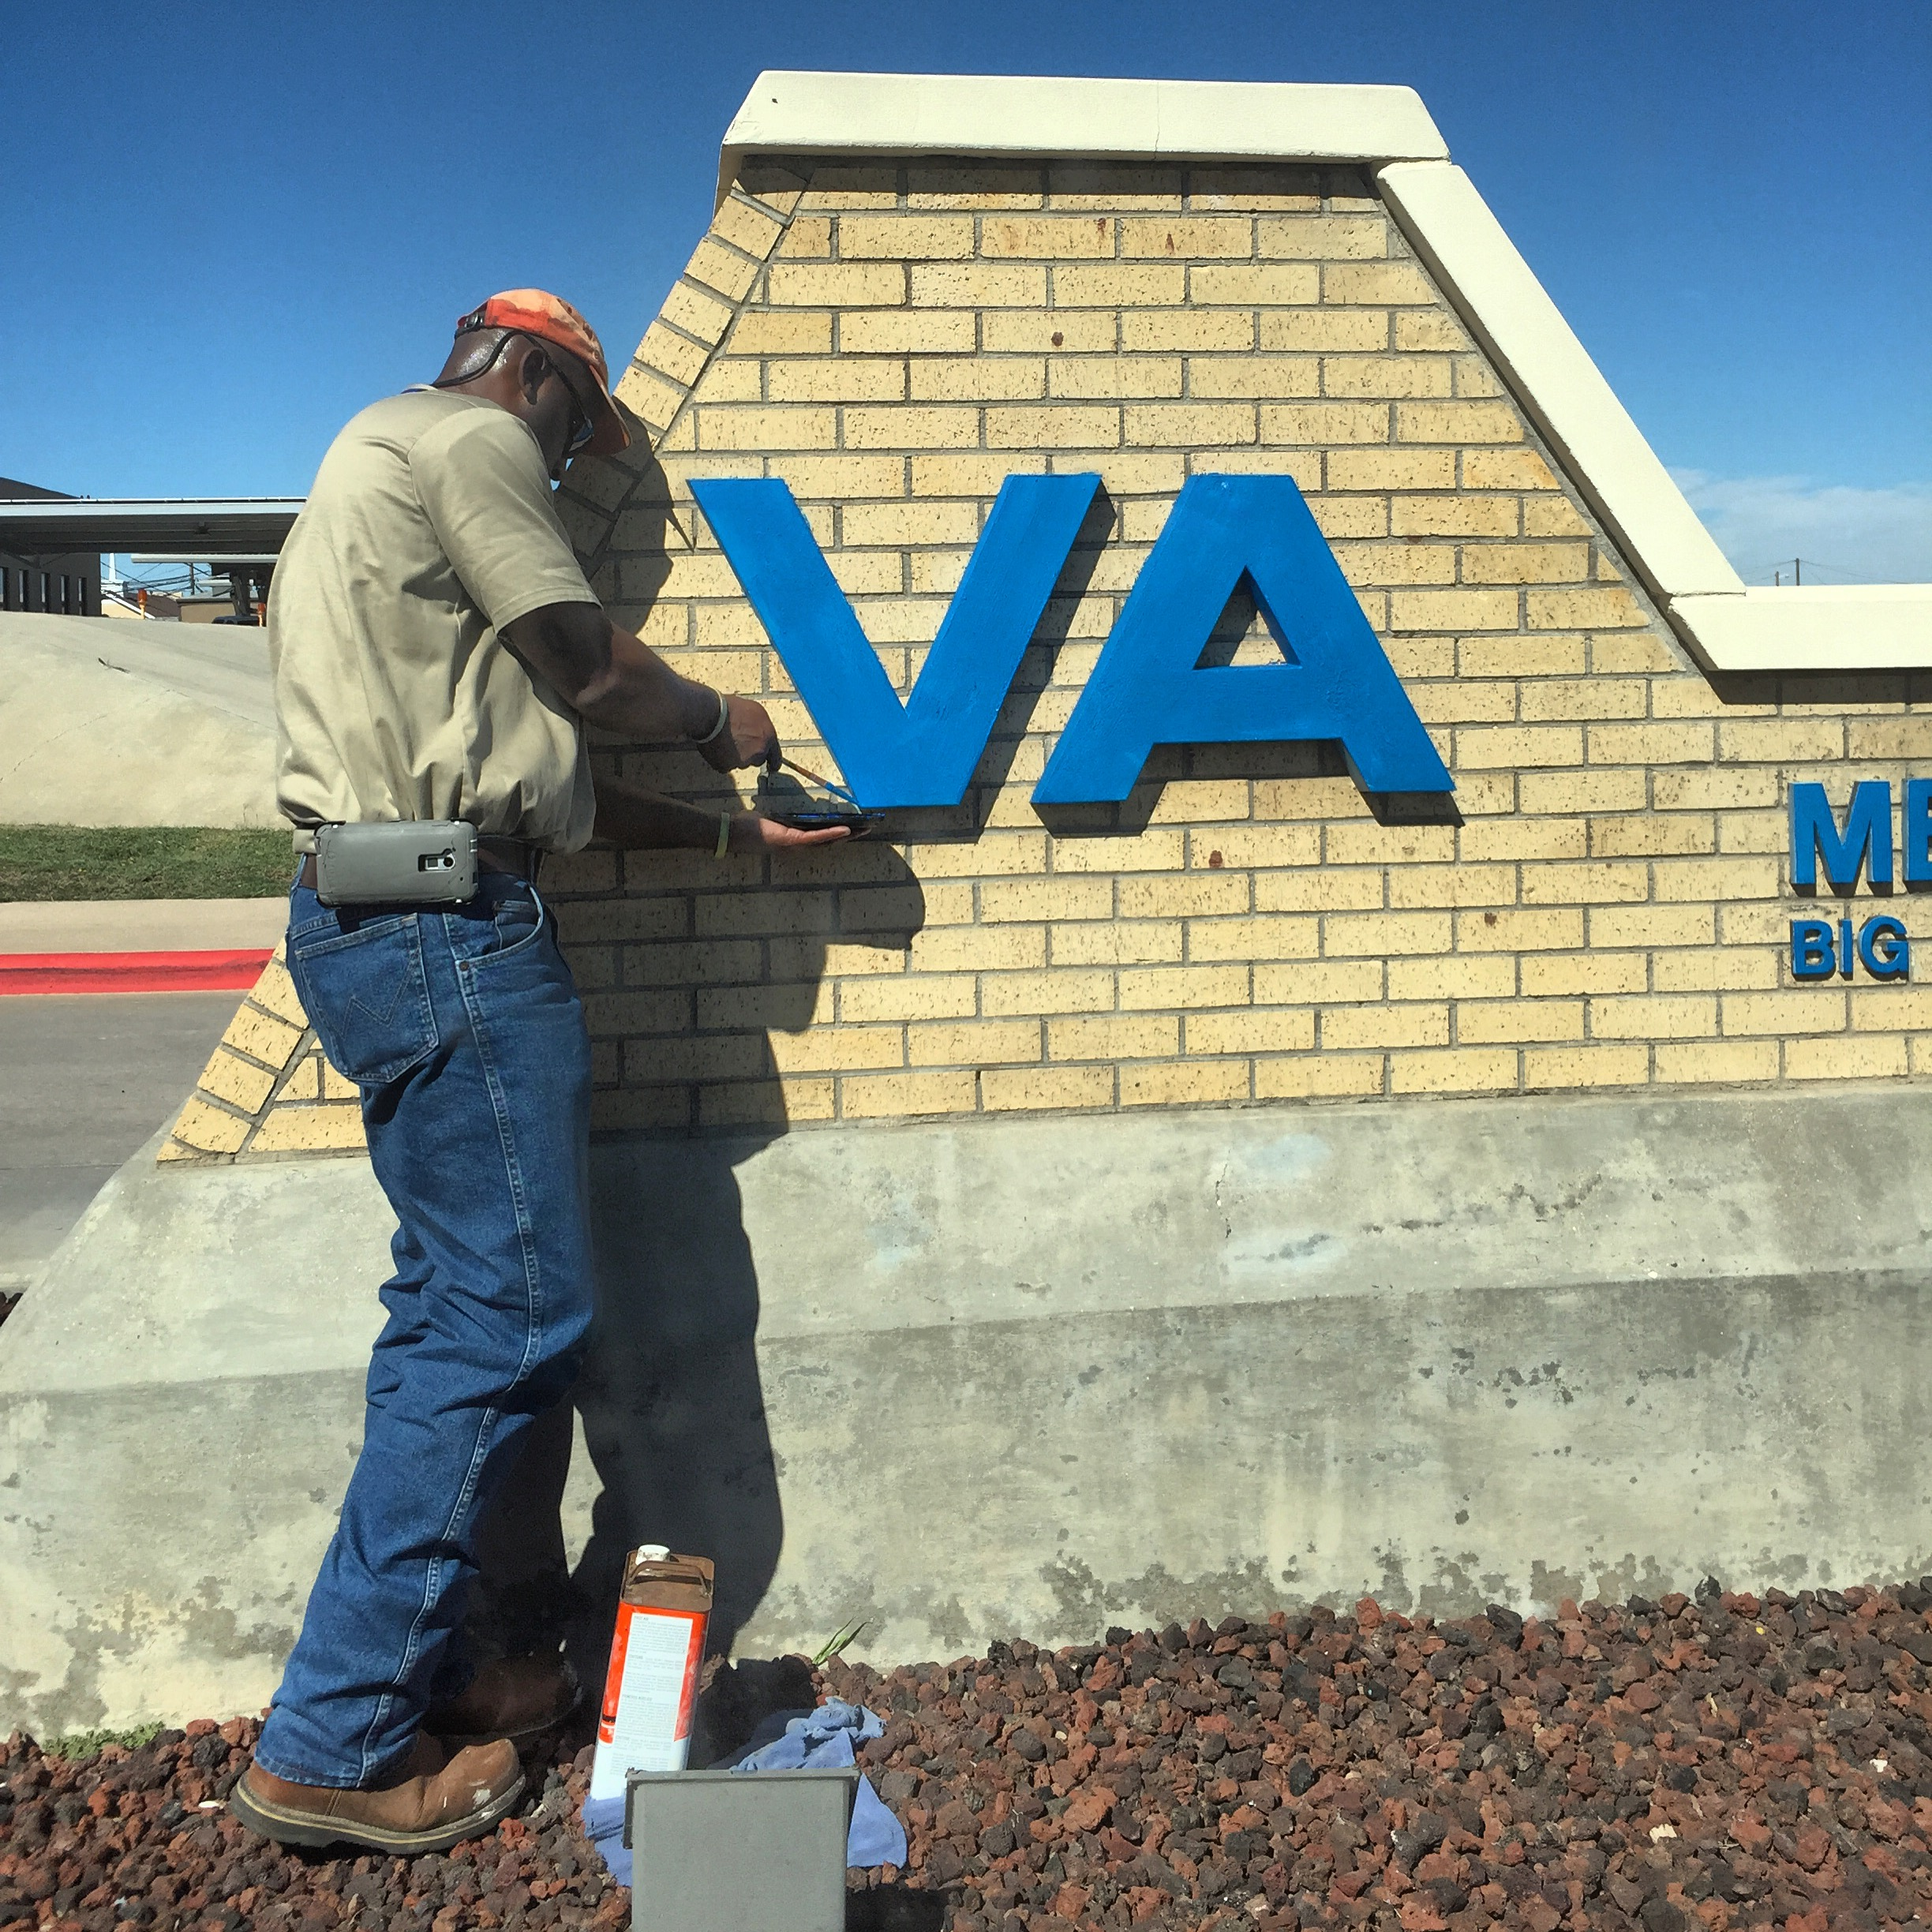 October, 2015. Big Spring, TX.A man repaints the letters at the entrance of the VA Medical Center in Big Spring. This hospital serves 33 counties across the rural landscapes of West Texas and Eastern New Mexico.  #SnapshotLives  #veterans    #health